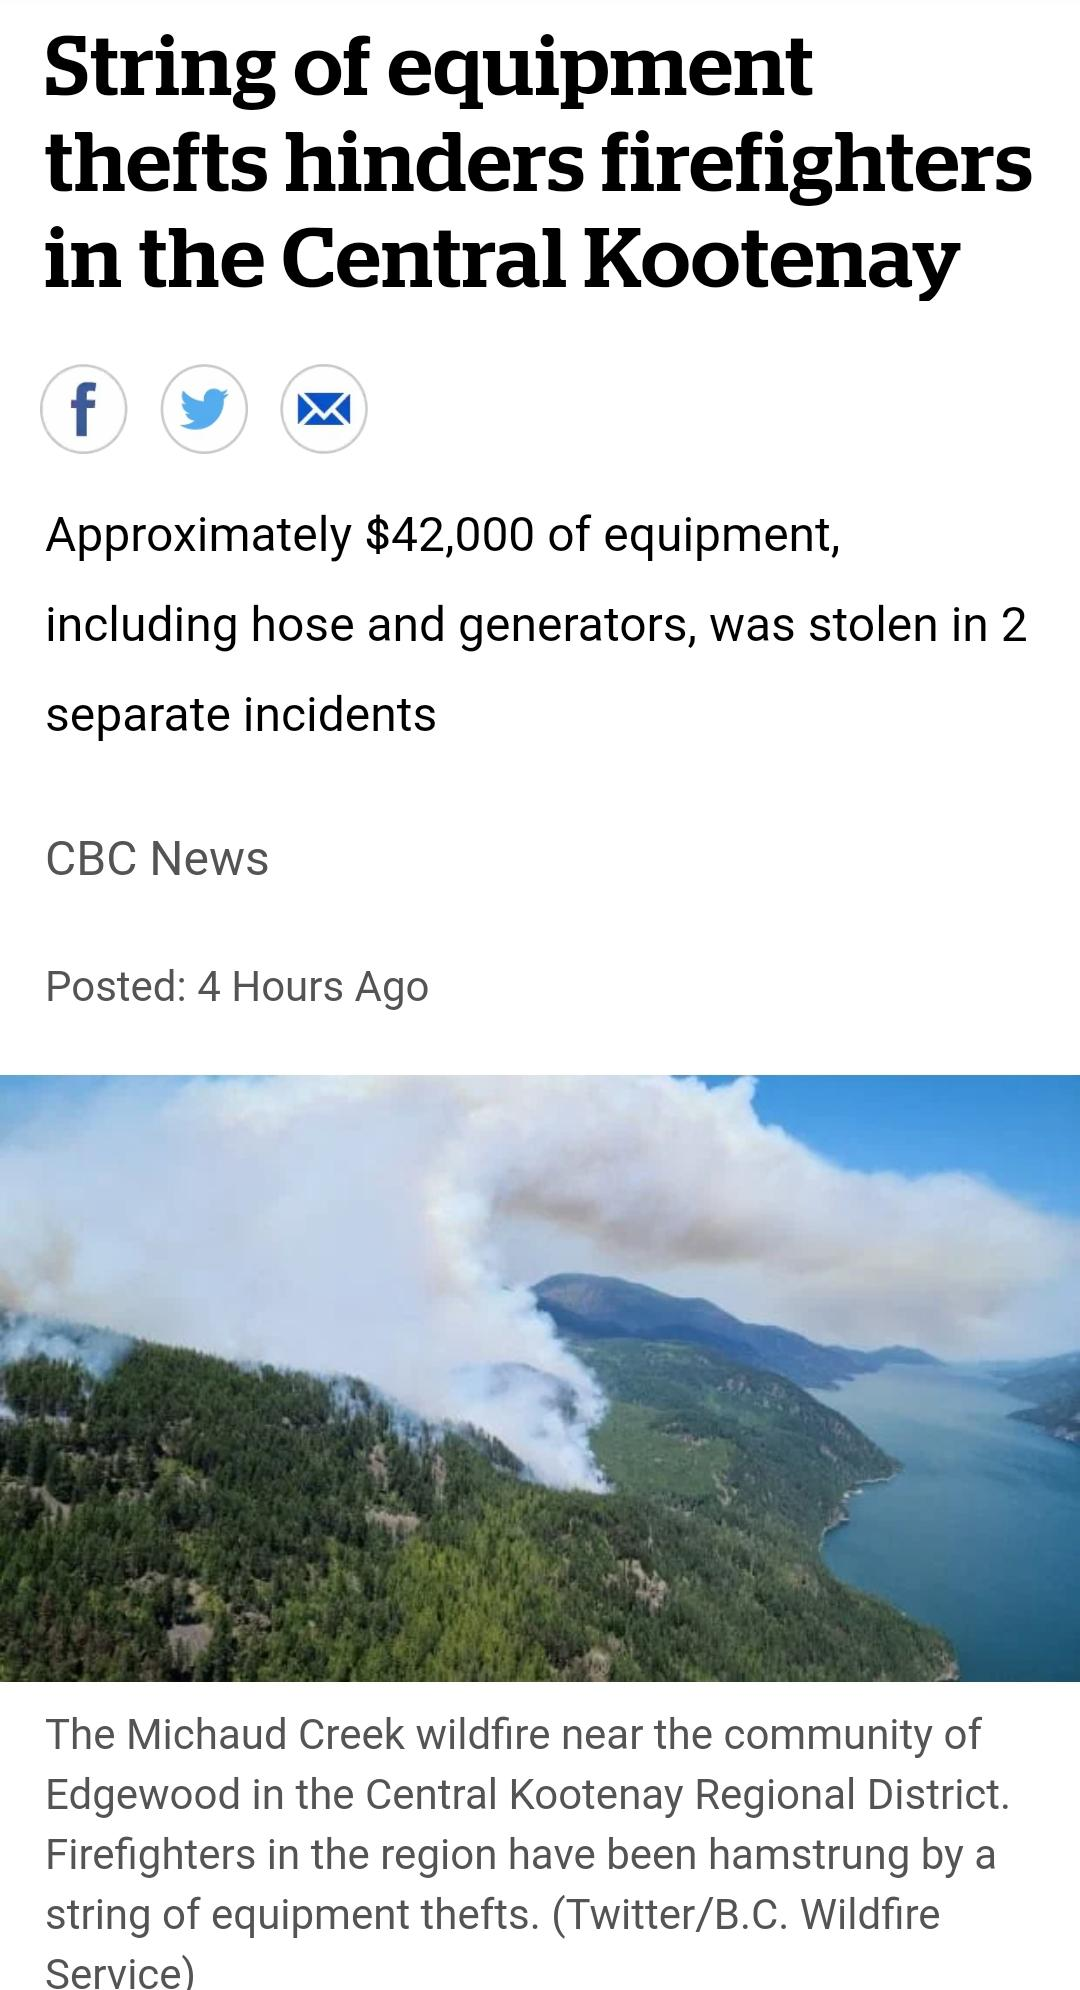 POS steals equipment from firefighters